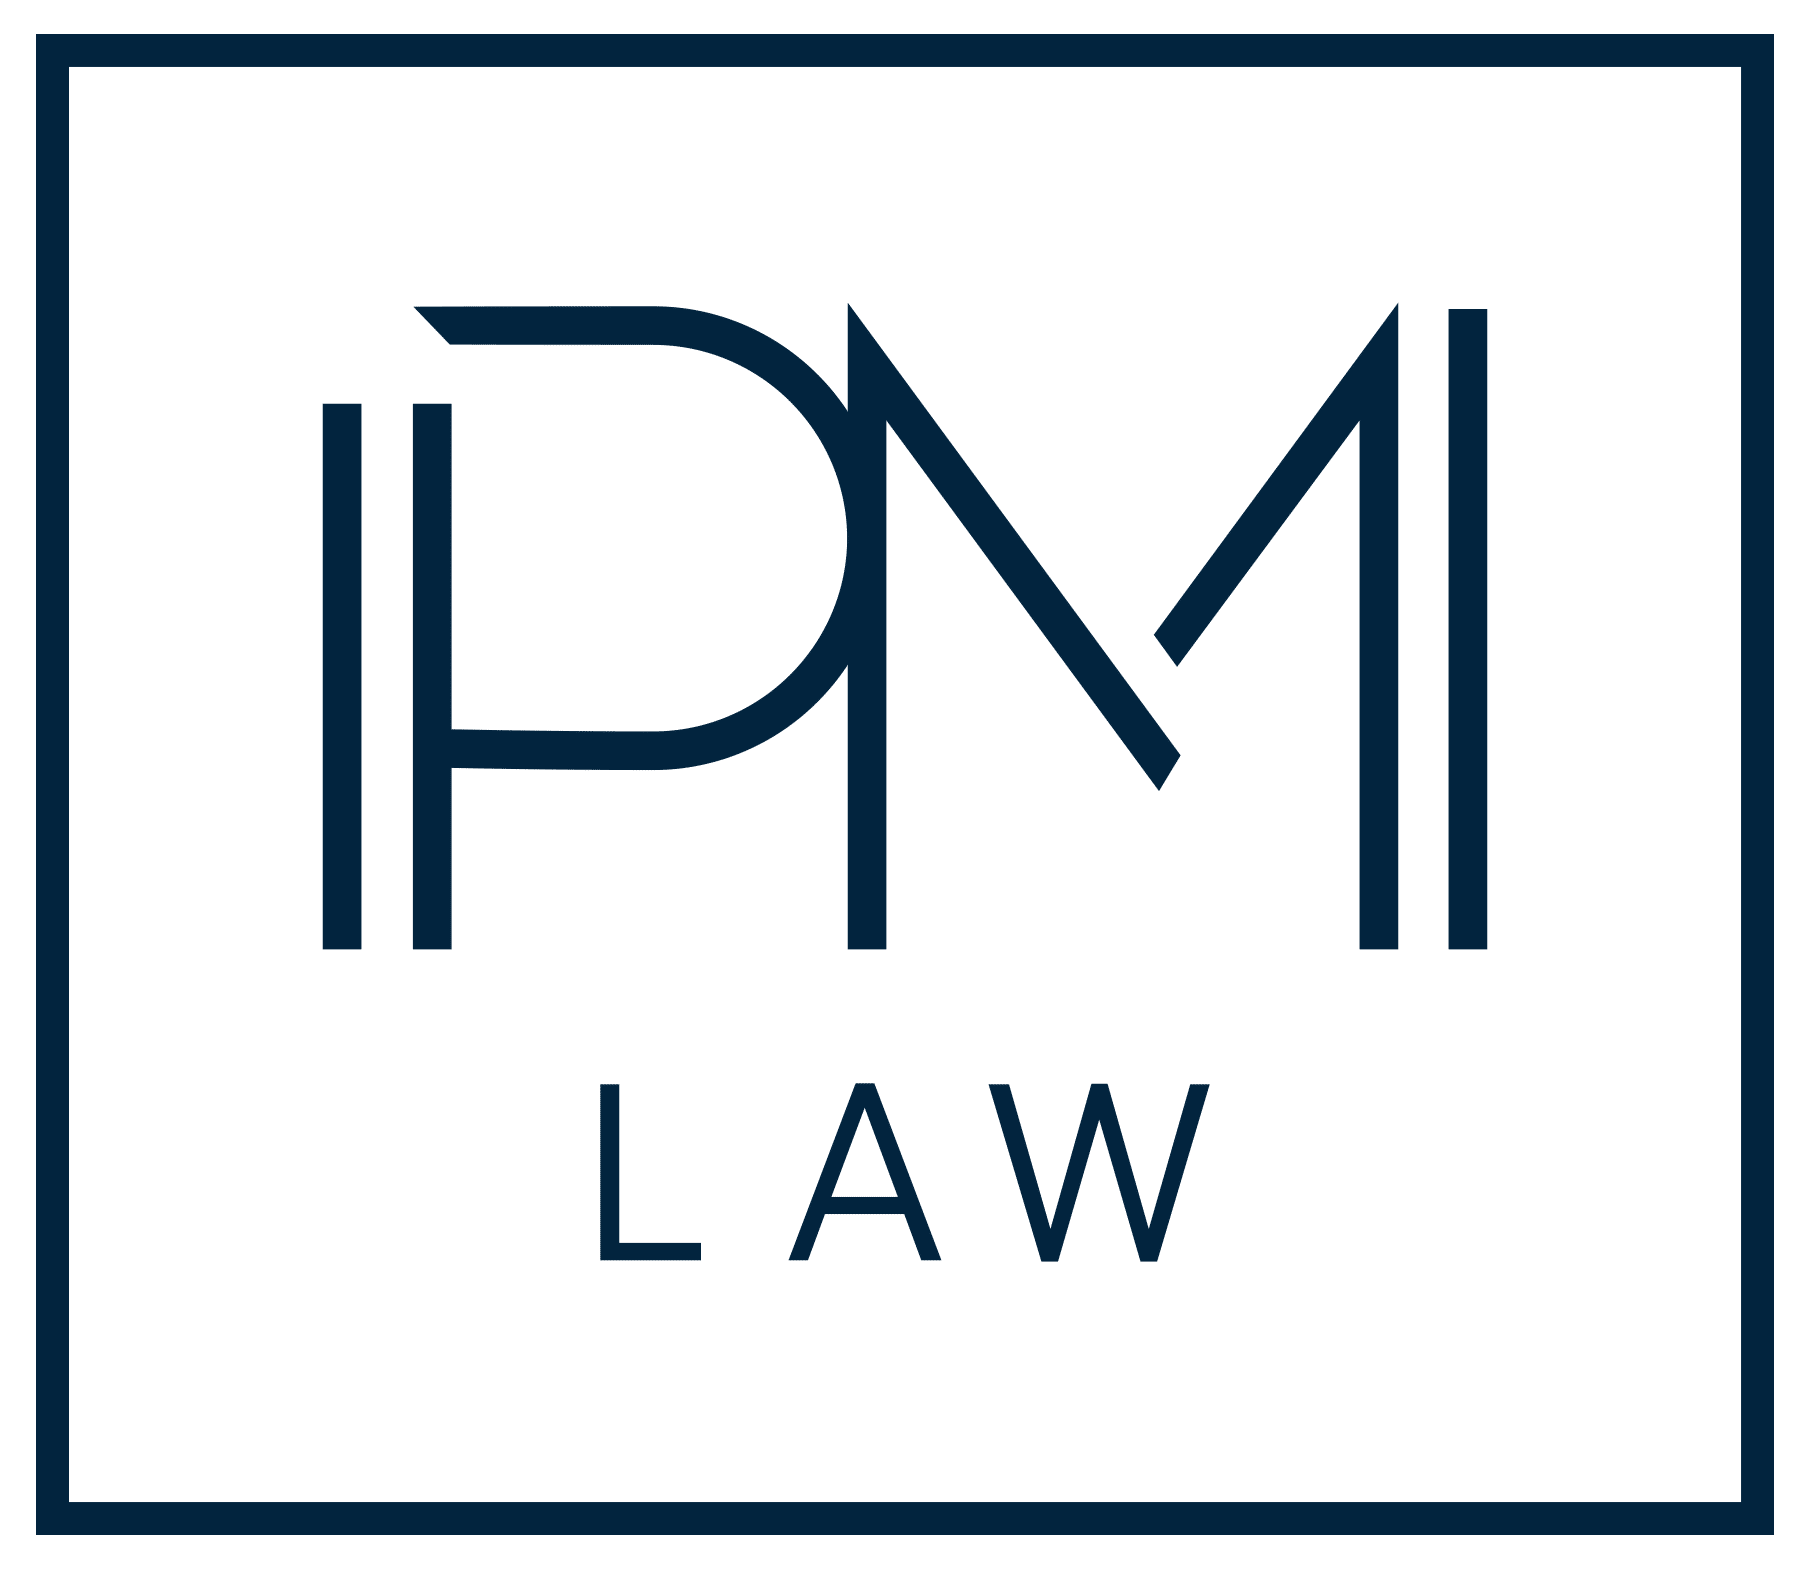 pm-law-jersey-city